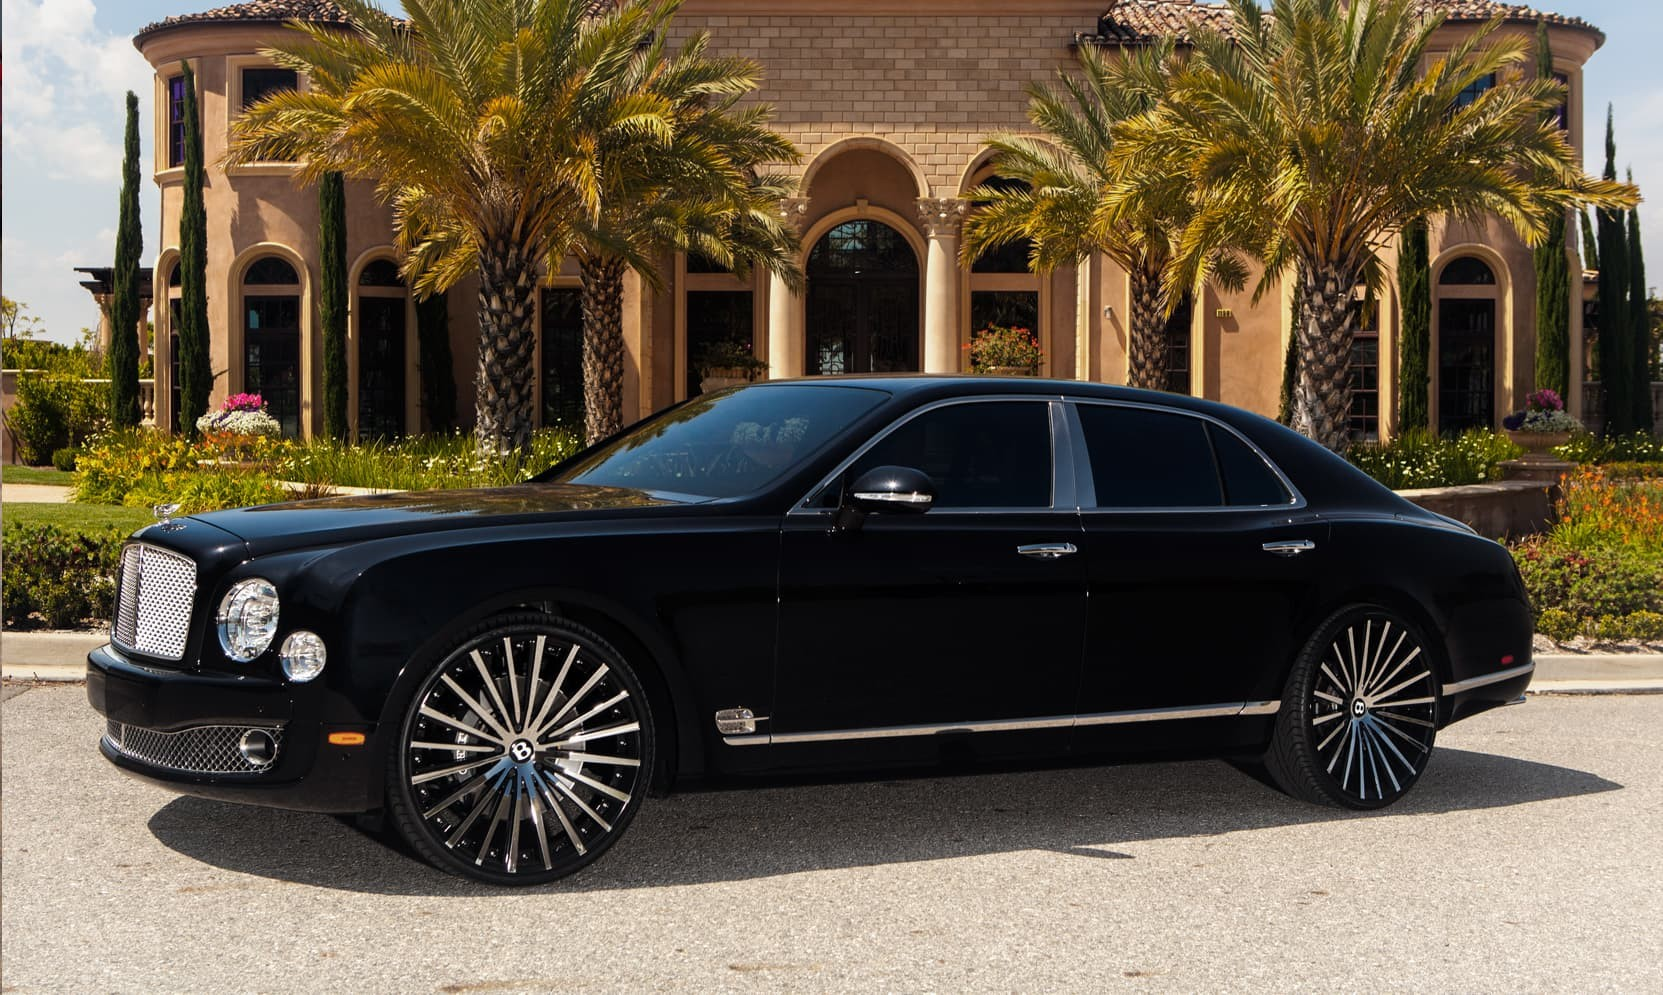 Custom LZ-722 on the Bentley Mulsanne.